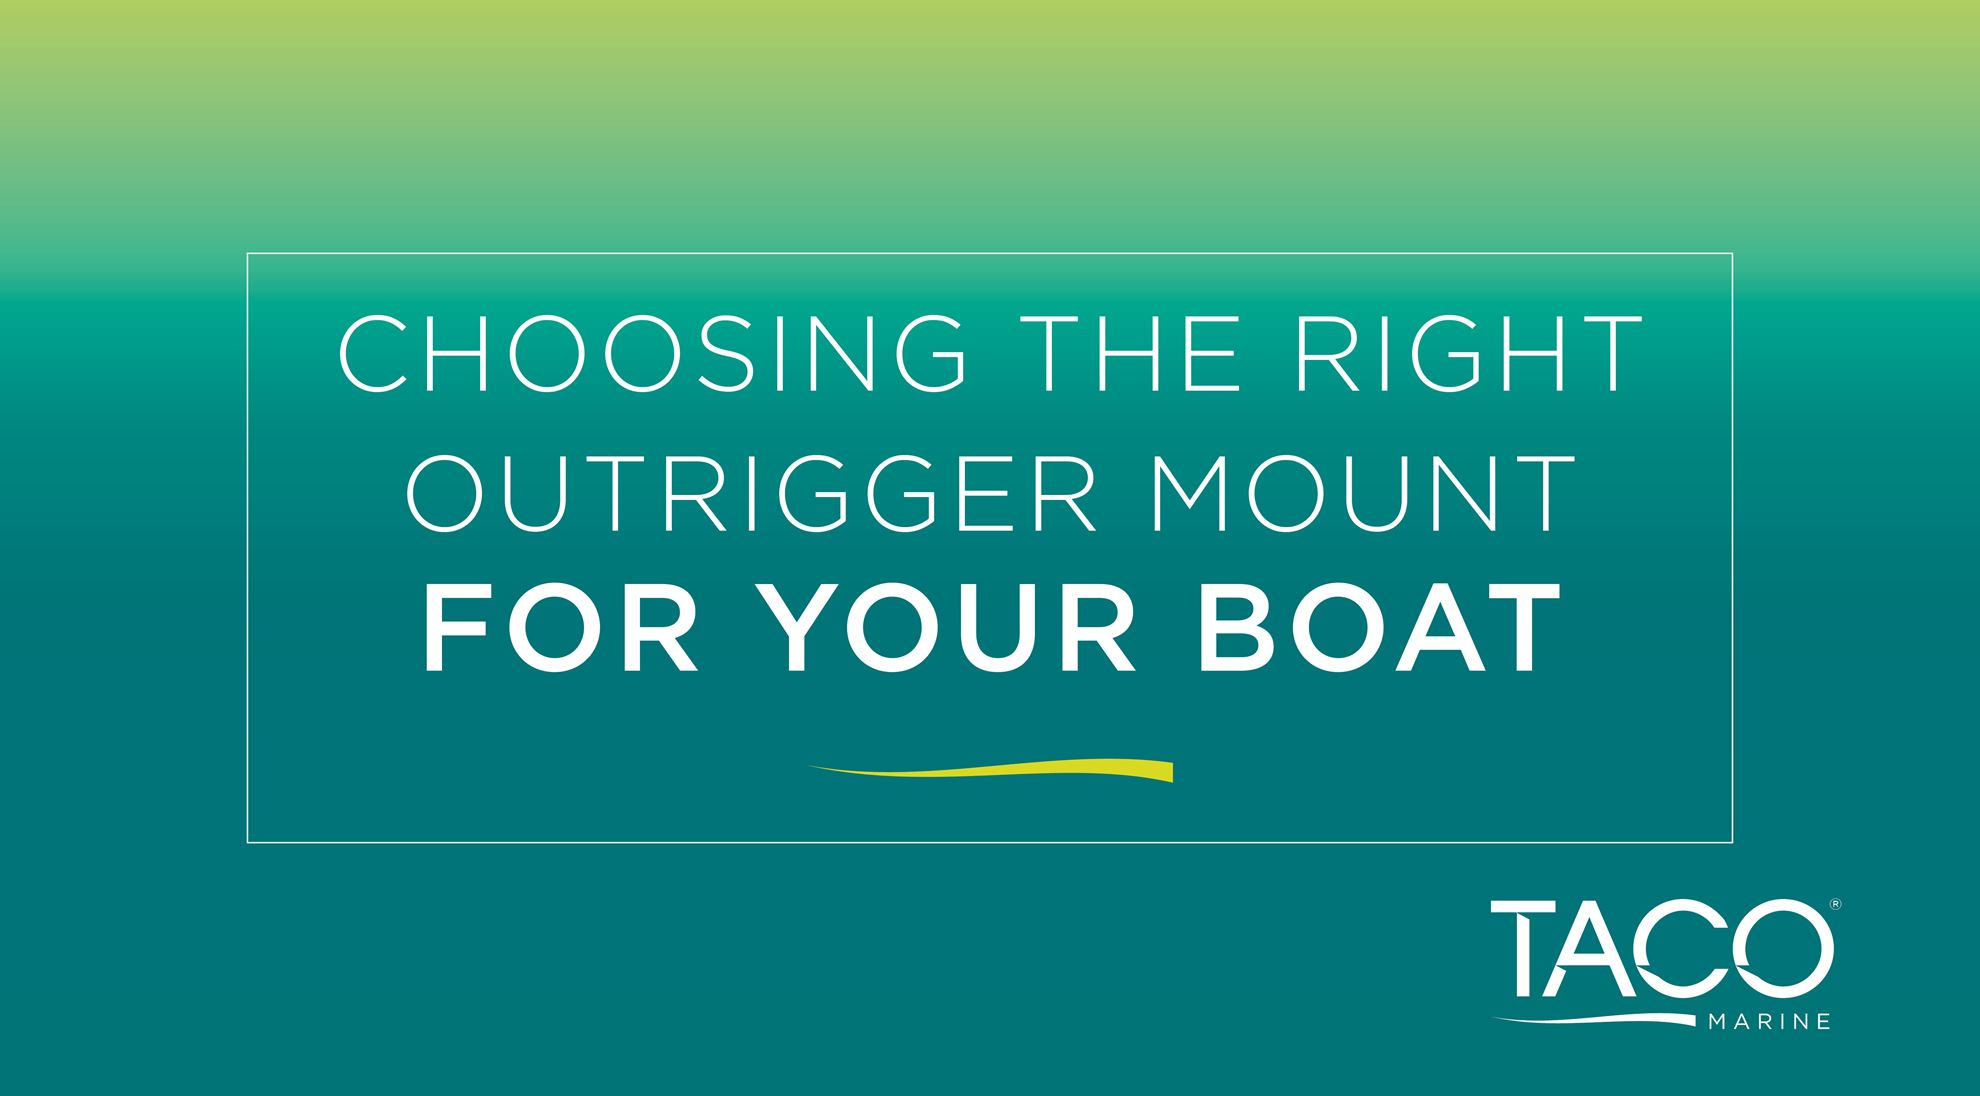 5 Tips to Choose the Right Outrigger Mount for Your Boat